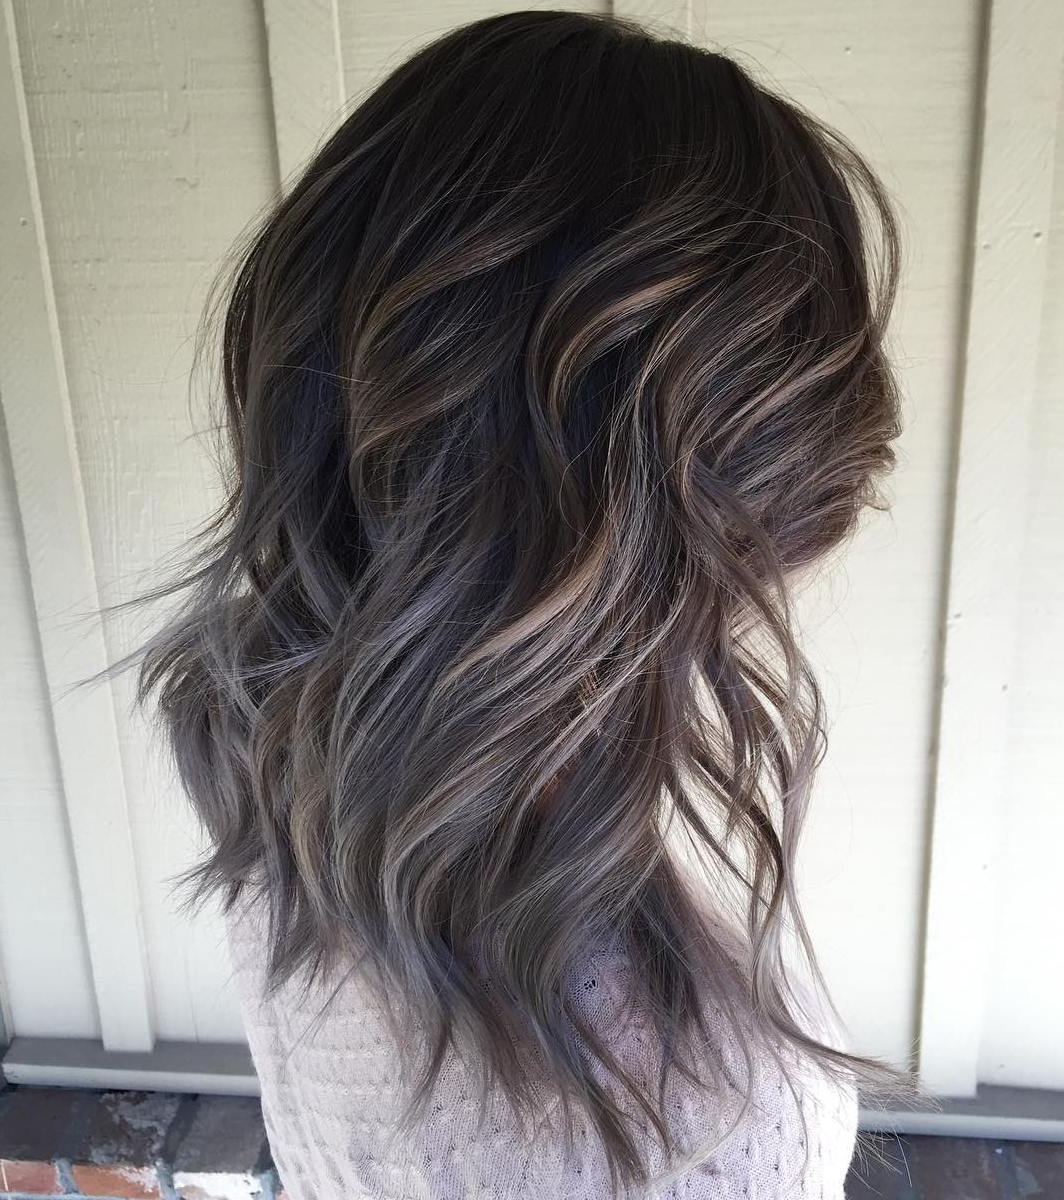 45 Ideas Of Gray And Silver Highlights On Brown Hair Within Silver Balayage Bob Haircuts With Swoopy Layers (View 5 of 20)